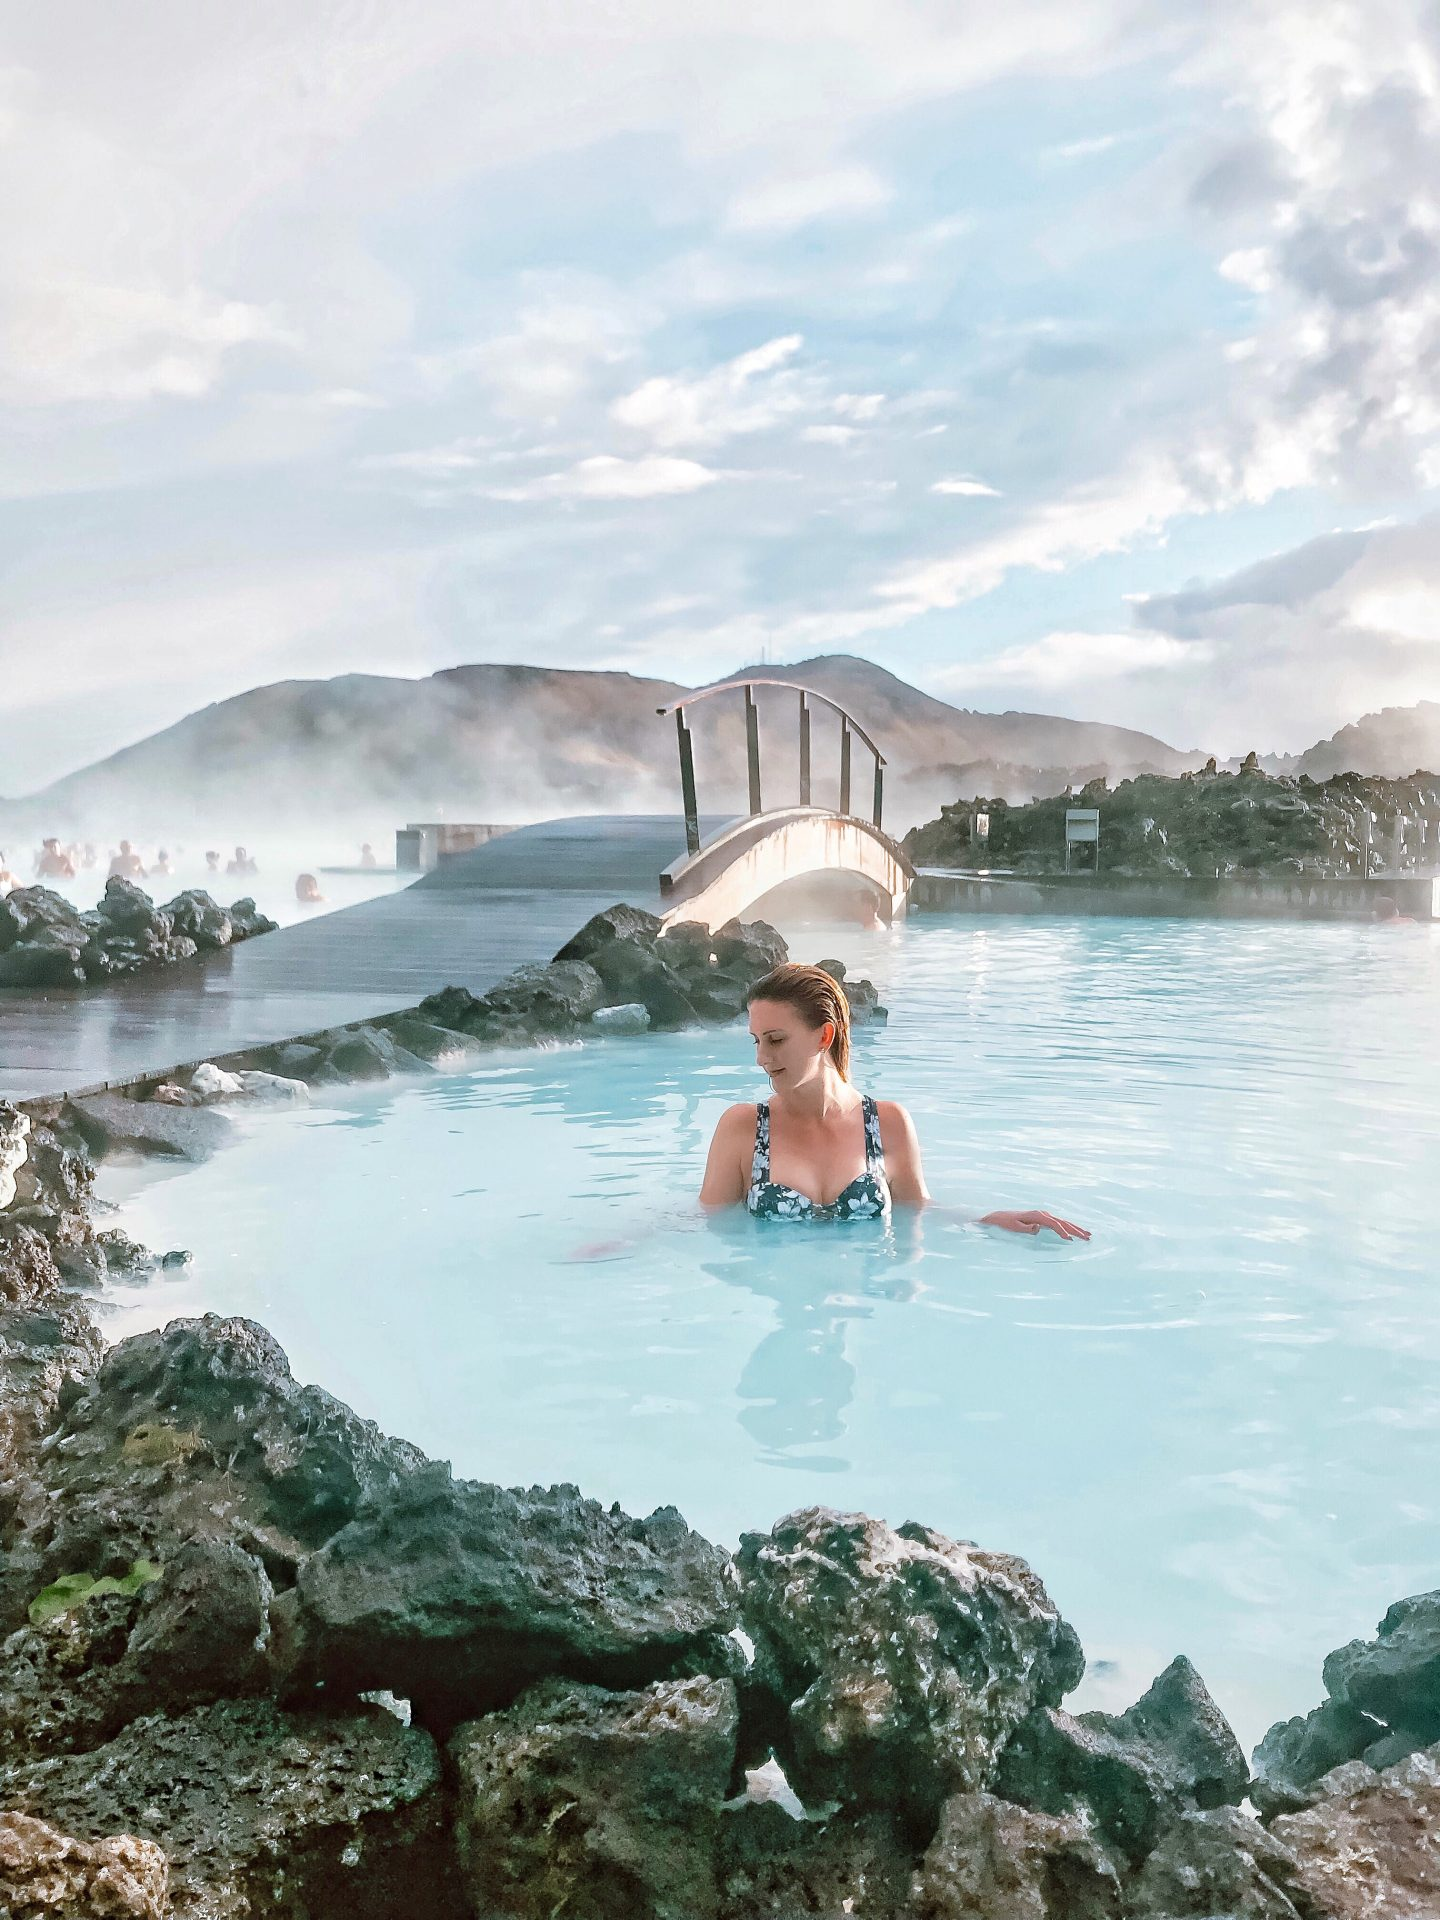 Travel Recap: The Perfect Long Weekend in Iceland